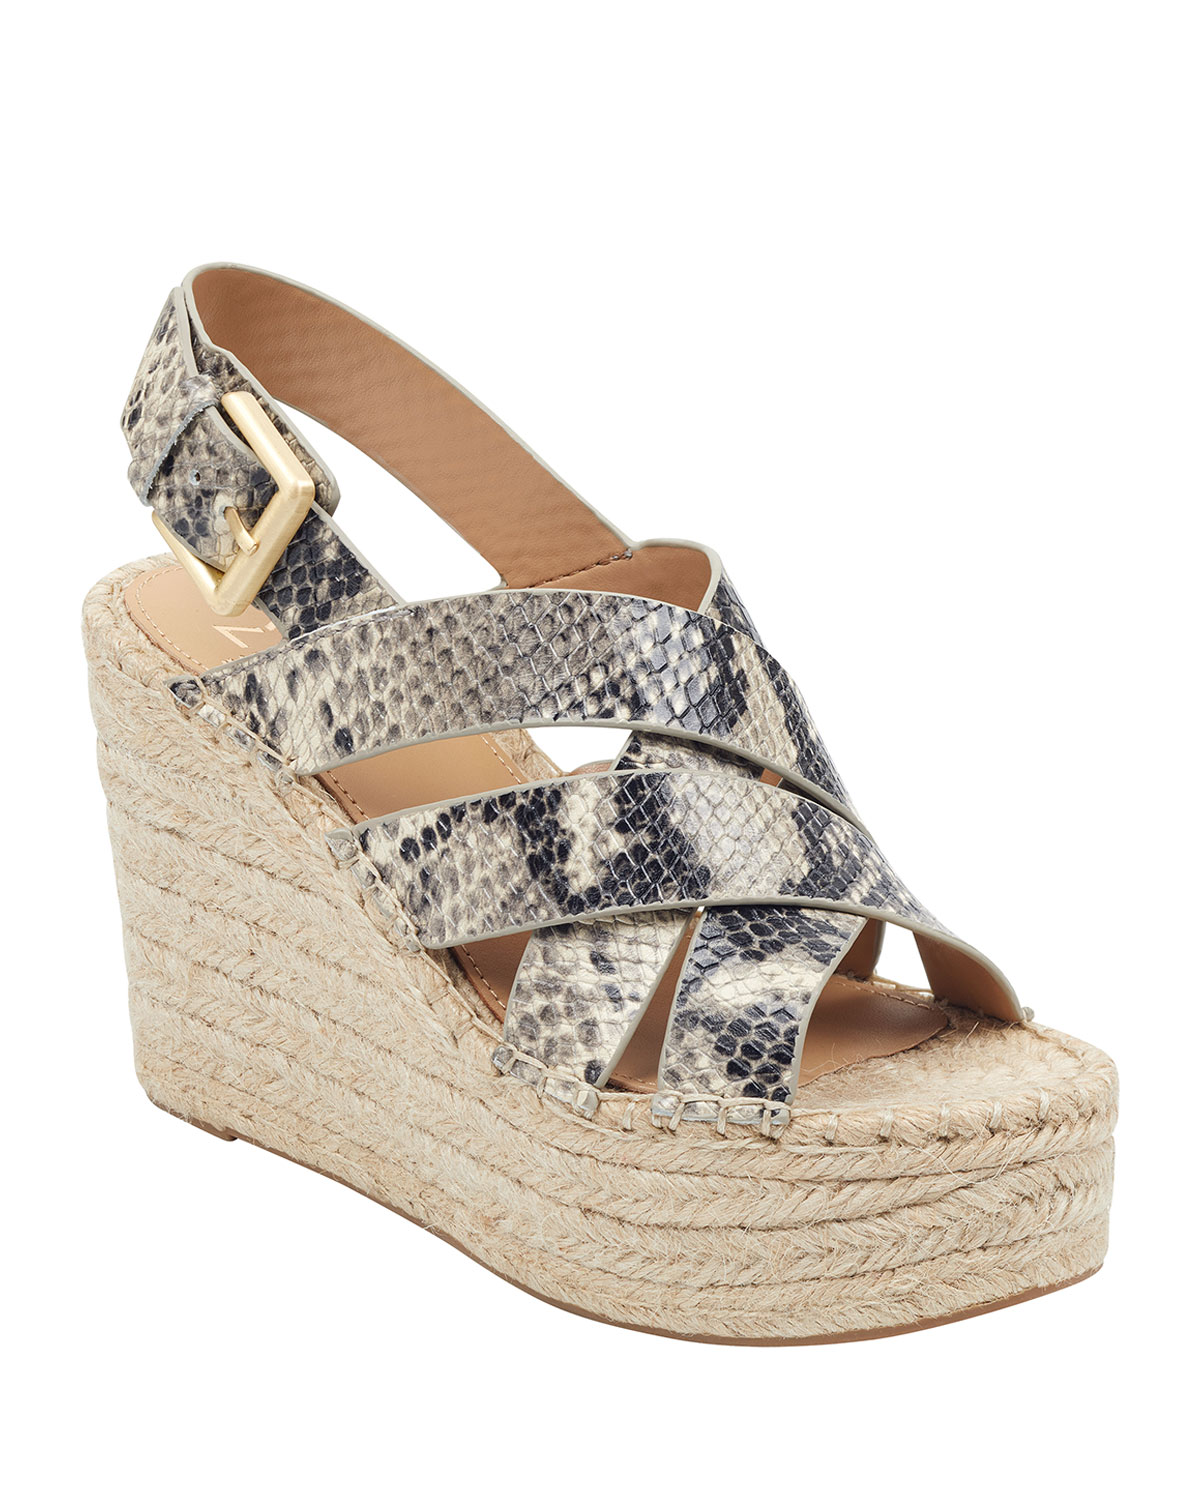 Alenni Snake-Print Wedge Sandals